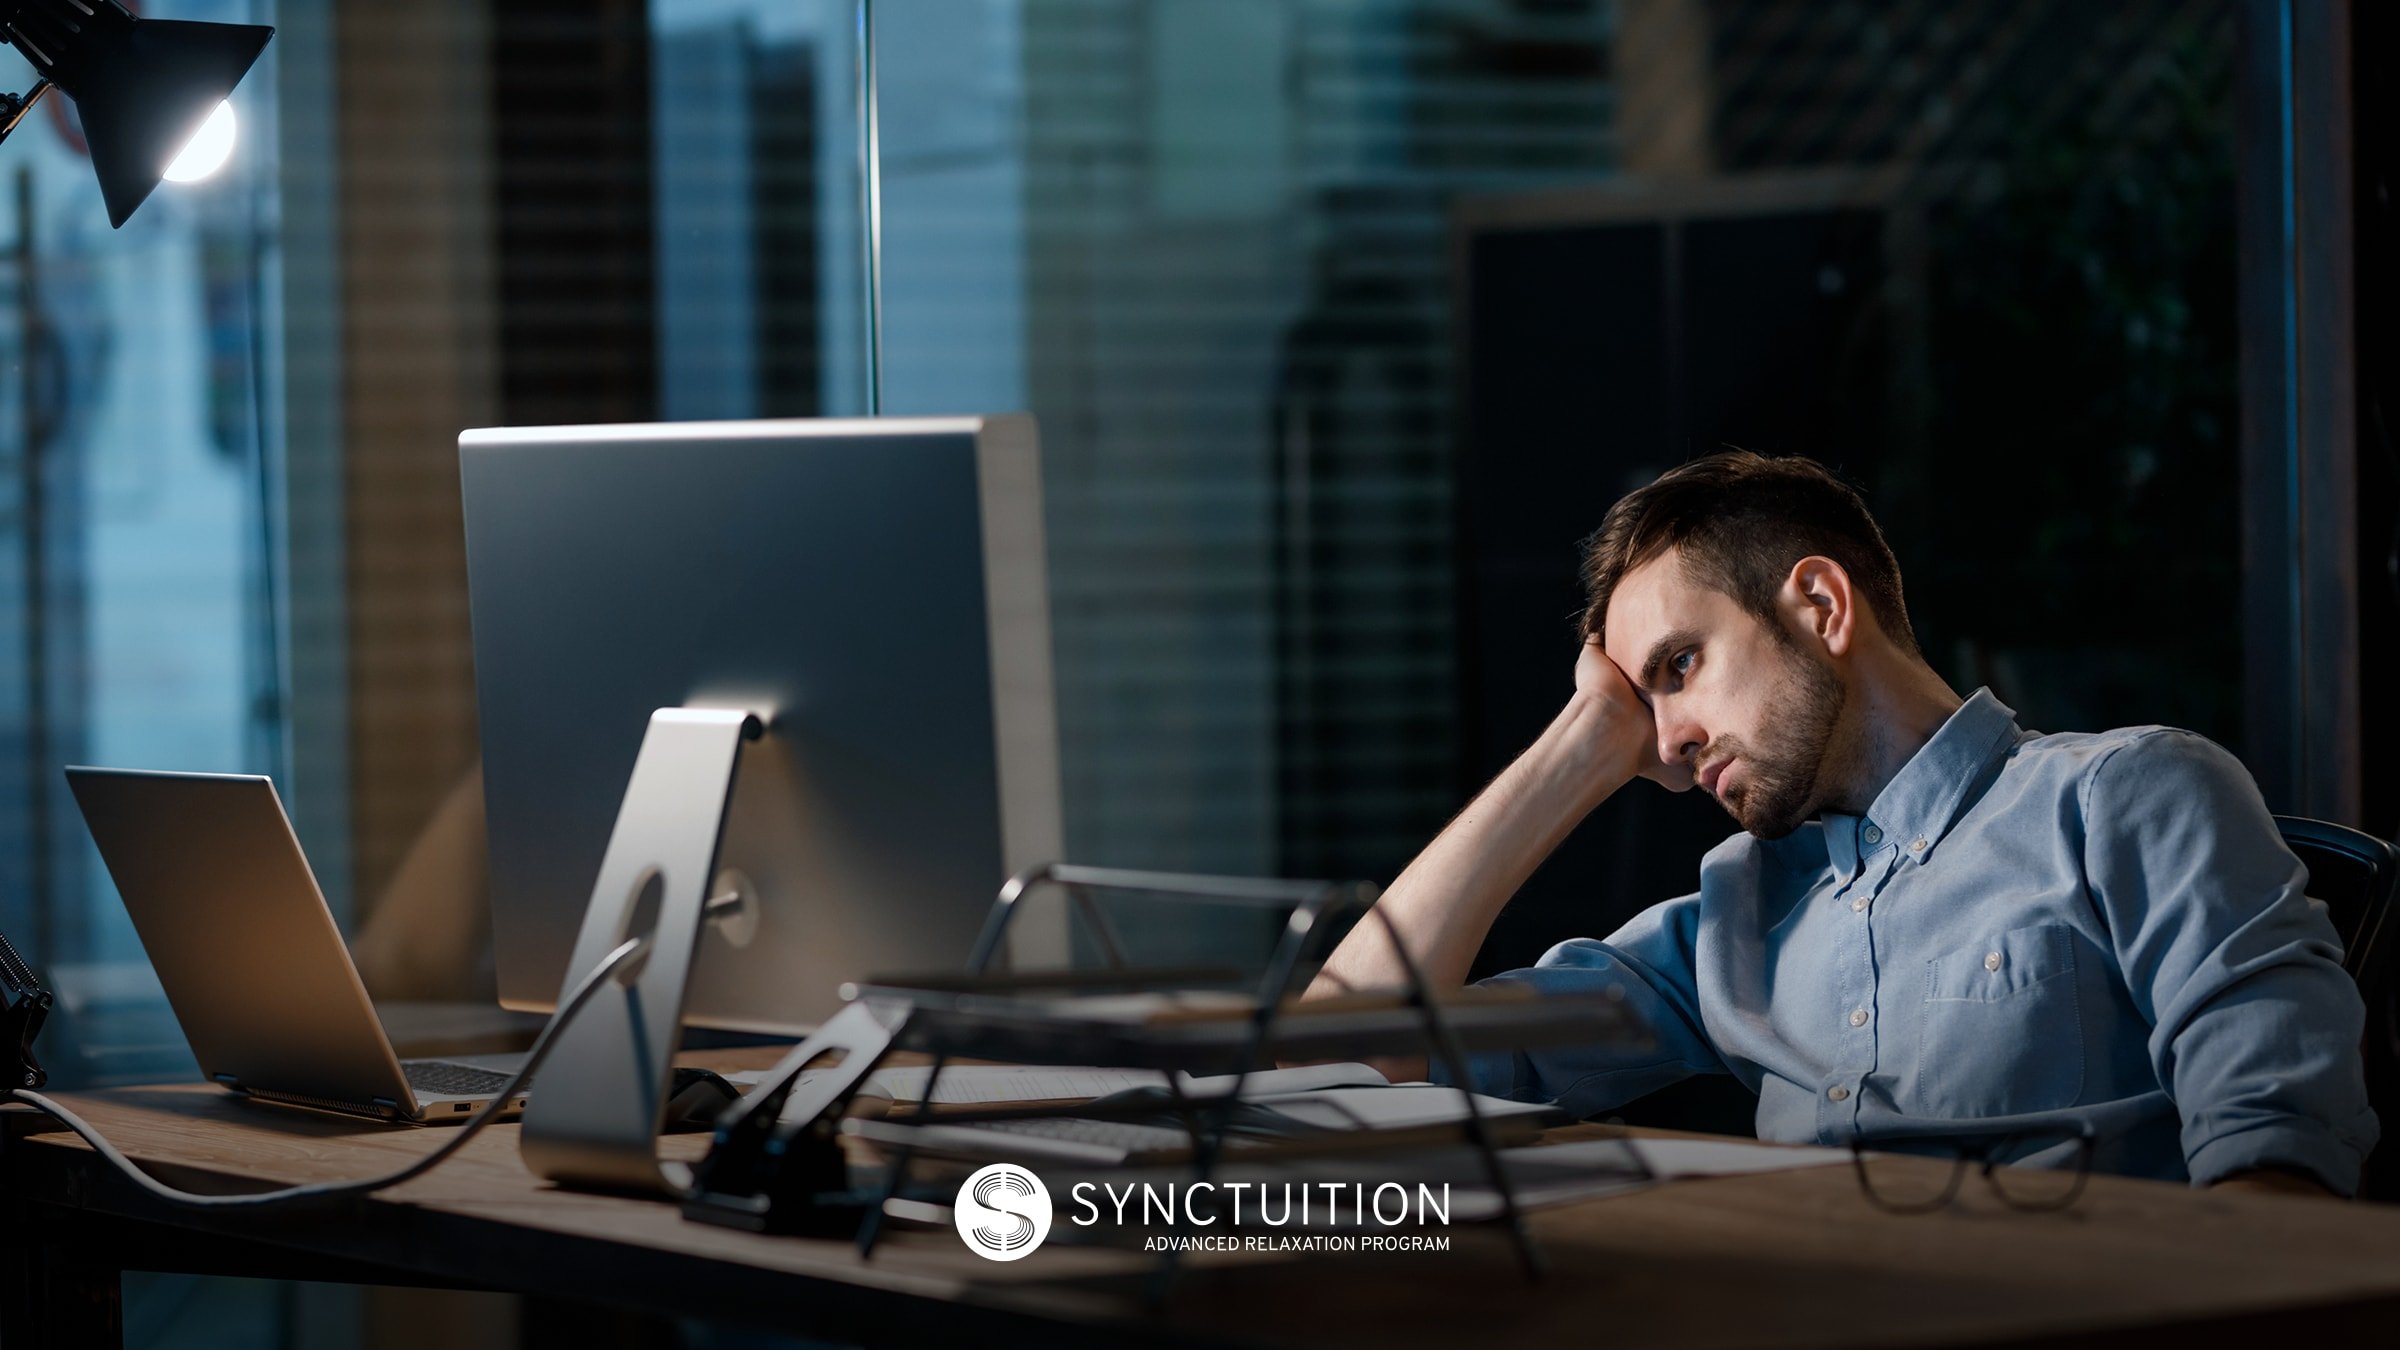 Mental Health in the workplace should be promoted in order to deal with stress, burnout and lack of productivity.